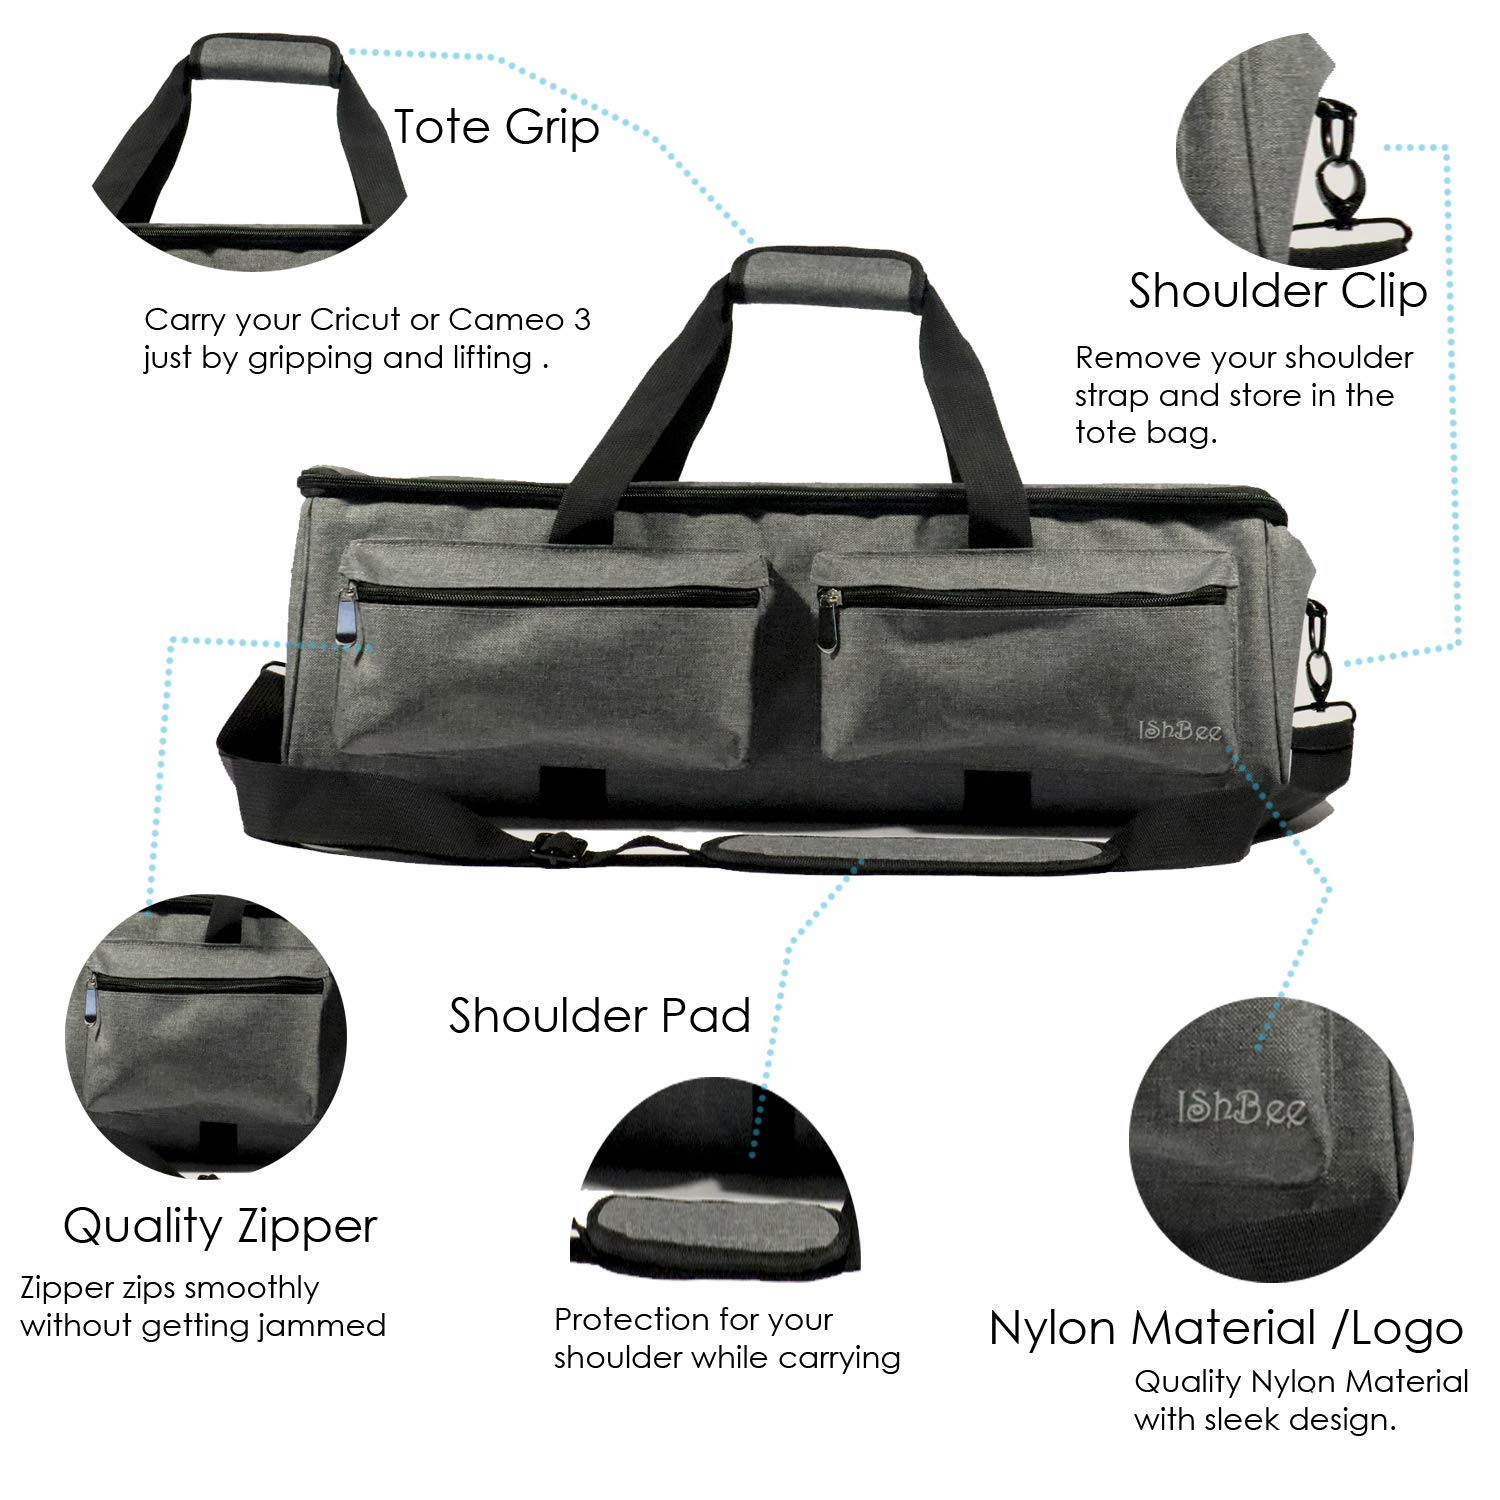 ISHBEE Craft Machine Storage Tote Carrying Case Travel Supplies Bag with Pockets for Blades,Vinyl,Markers /& Tool Accessories Fits Cricut Maker Explore Air 2 Cricut Explore Air One Silhouette Cameo